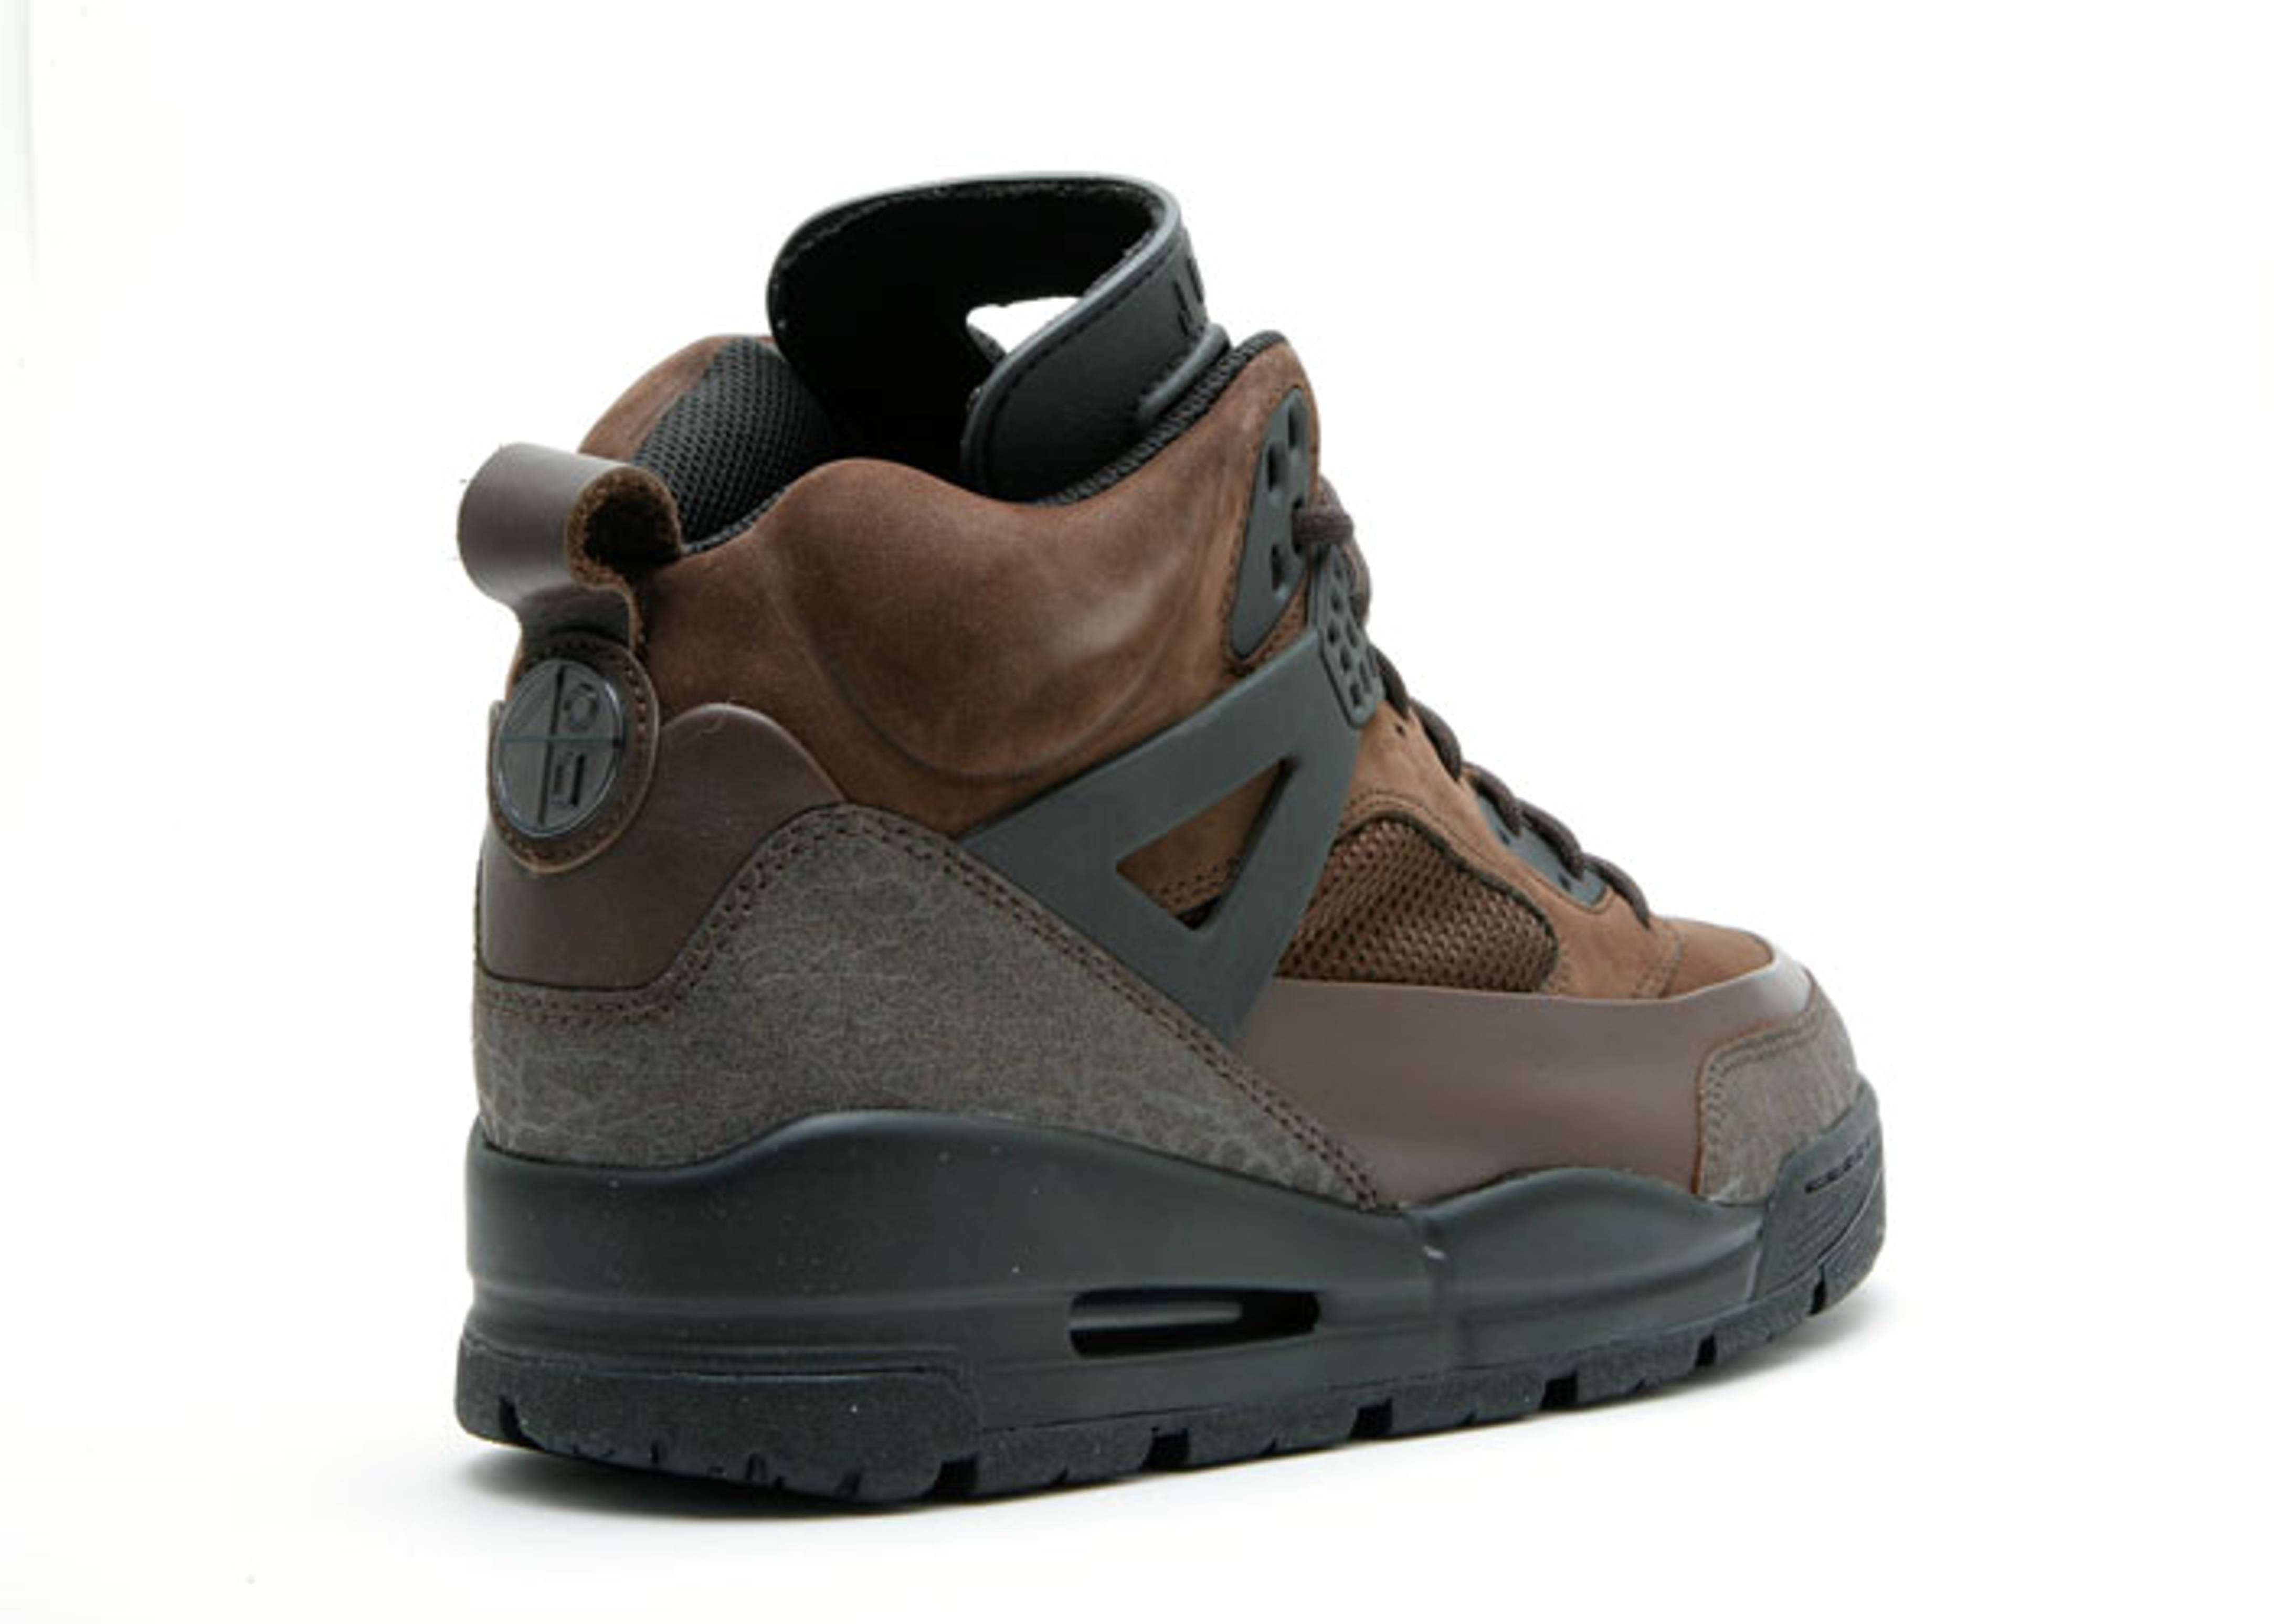 fb9a9f4ee1e1ea Jordan Winterized Spiz ike - Air Jordan - 375356 201 - dark cinder black